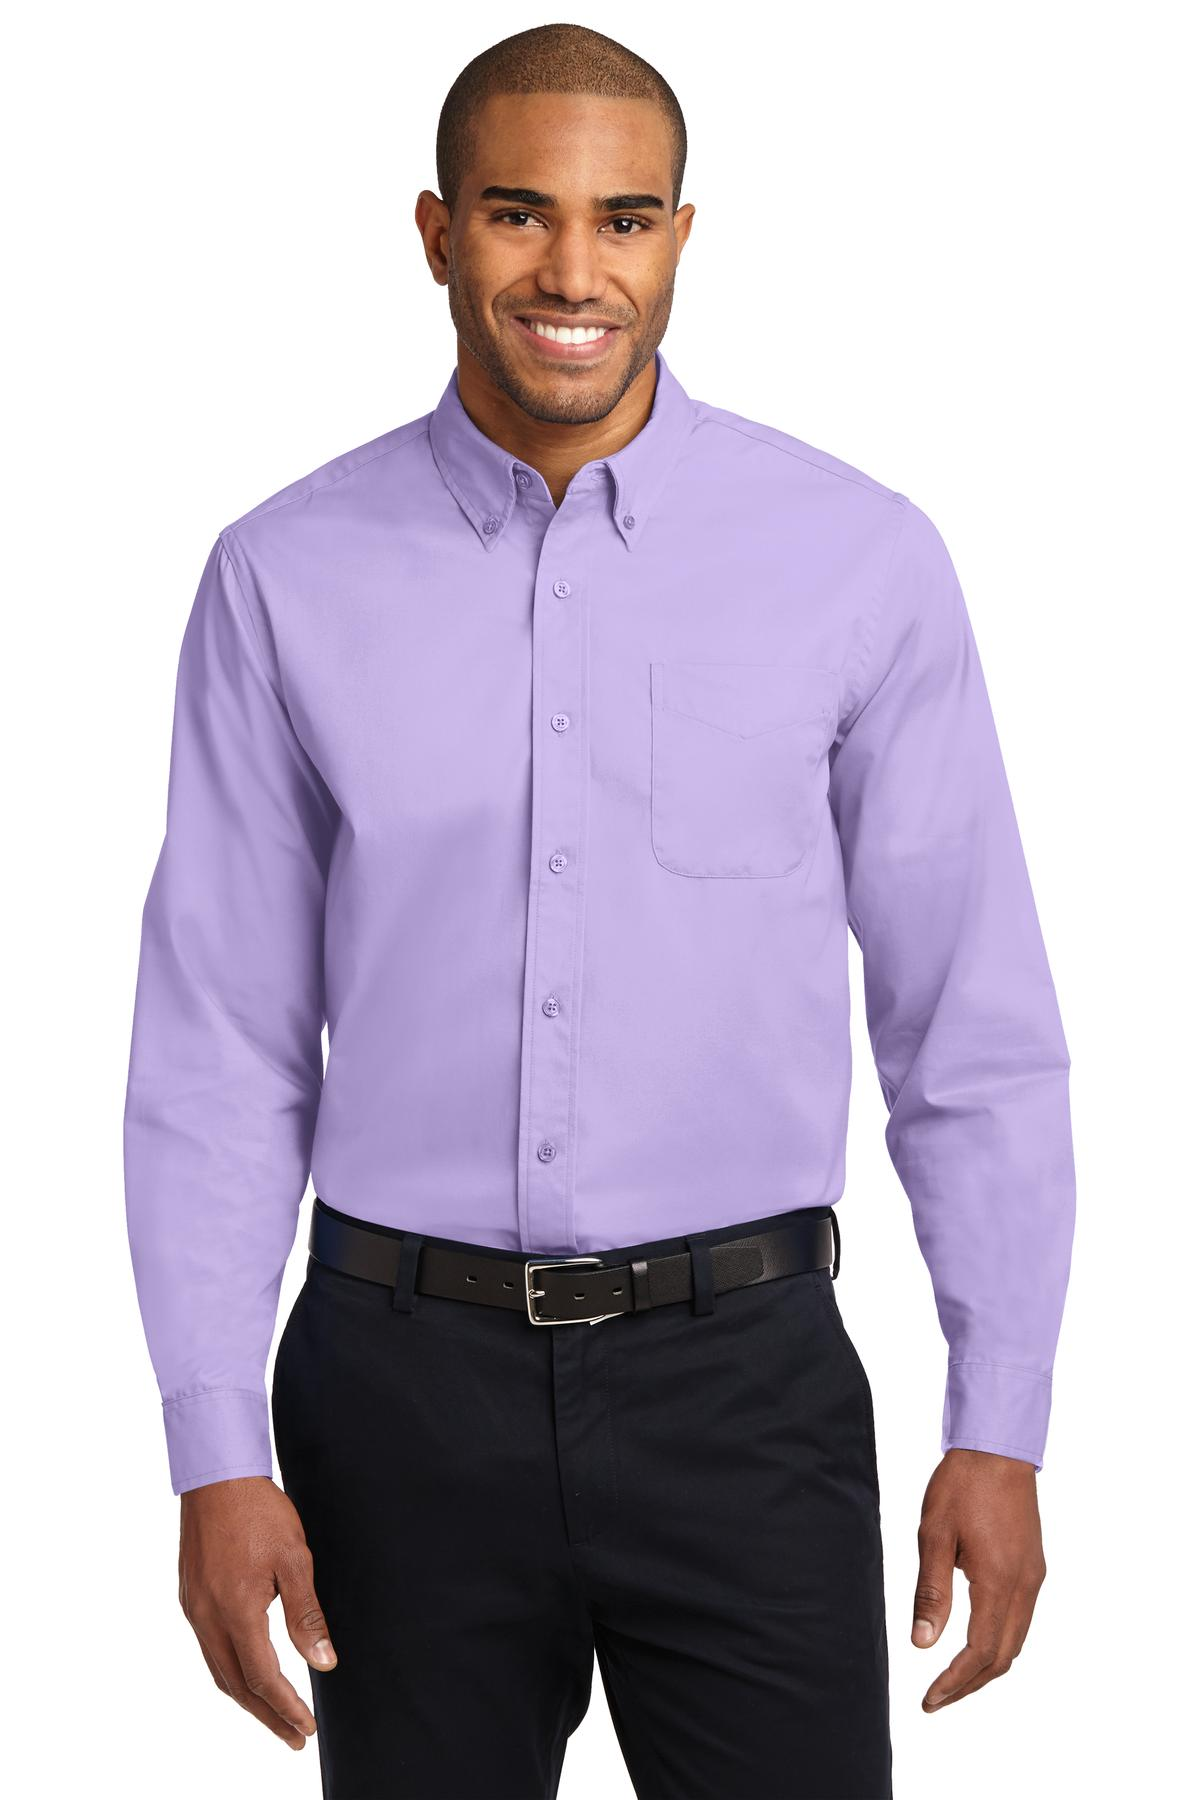 Port Authority ®  Tall Long Sleeve Easy Care Shirt.  TLS608 - Bright Lavender